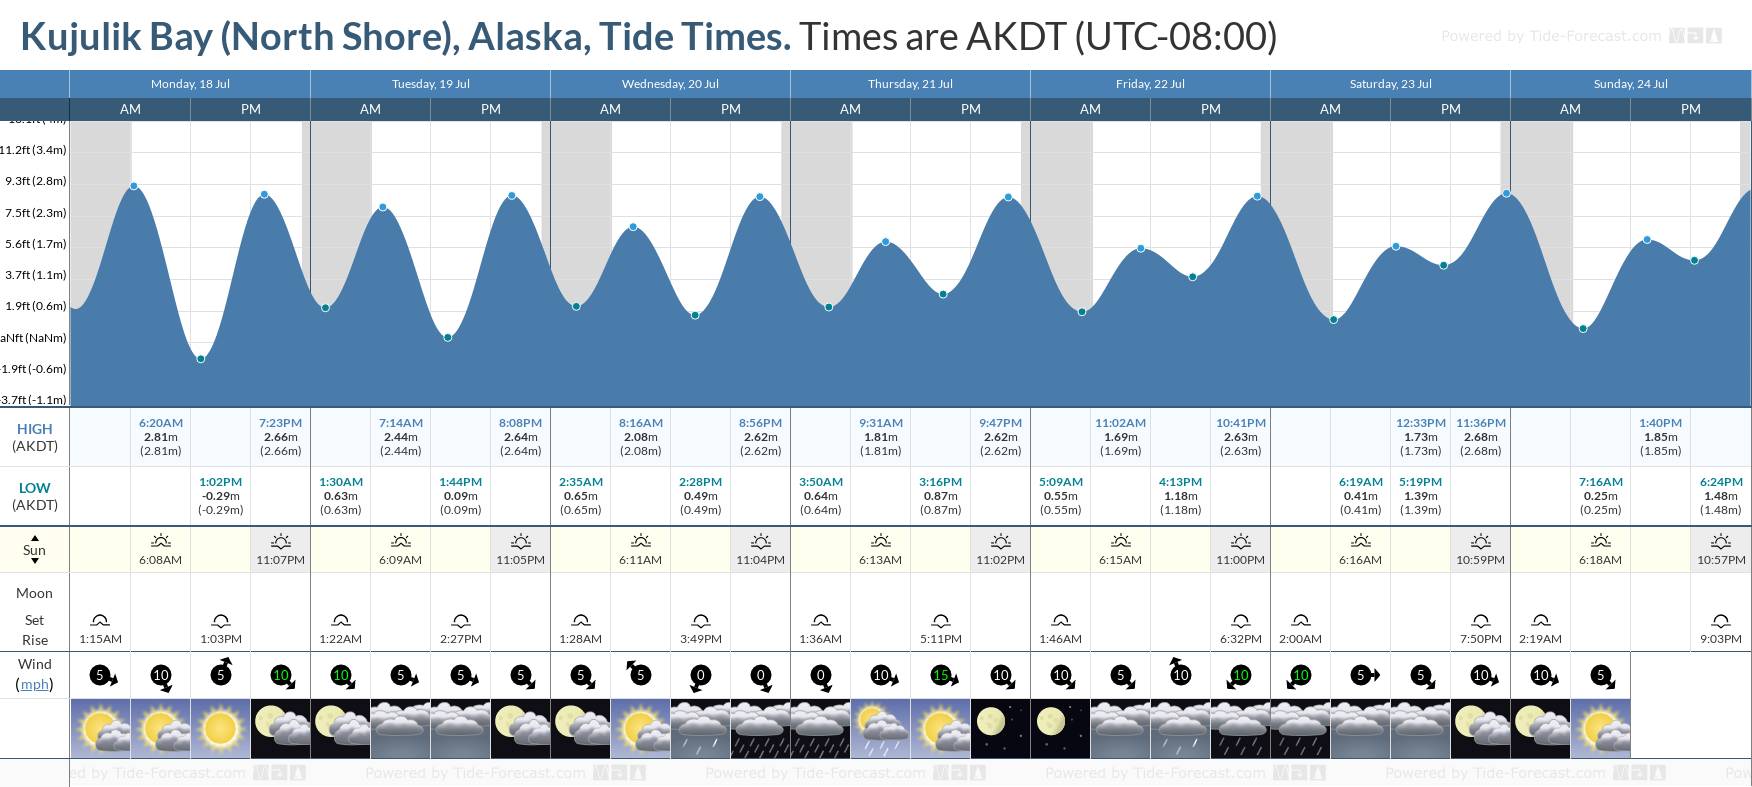 Kujulik Bay (North Shore), Alaska Tide Chart including high and low tide tide times for the next 7 days